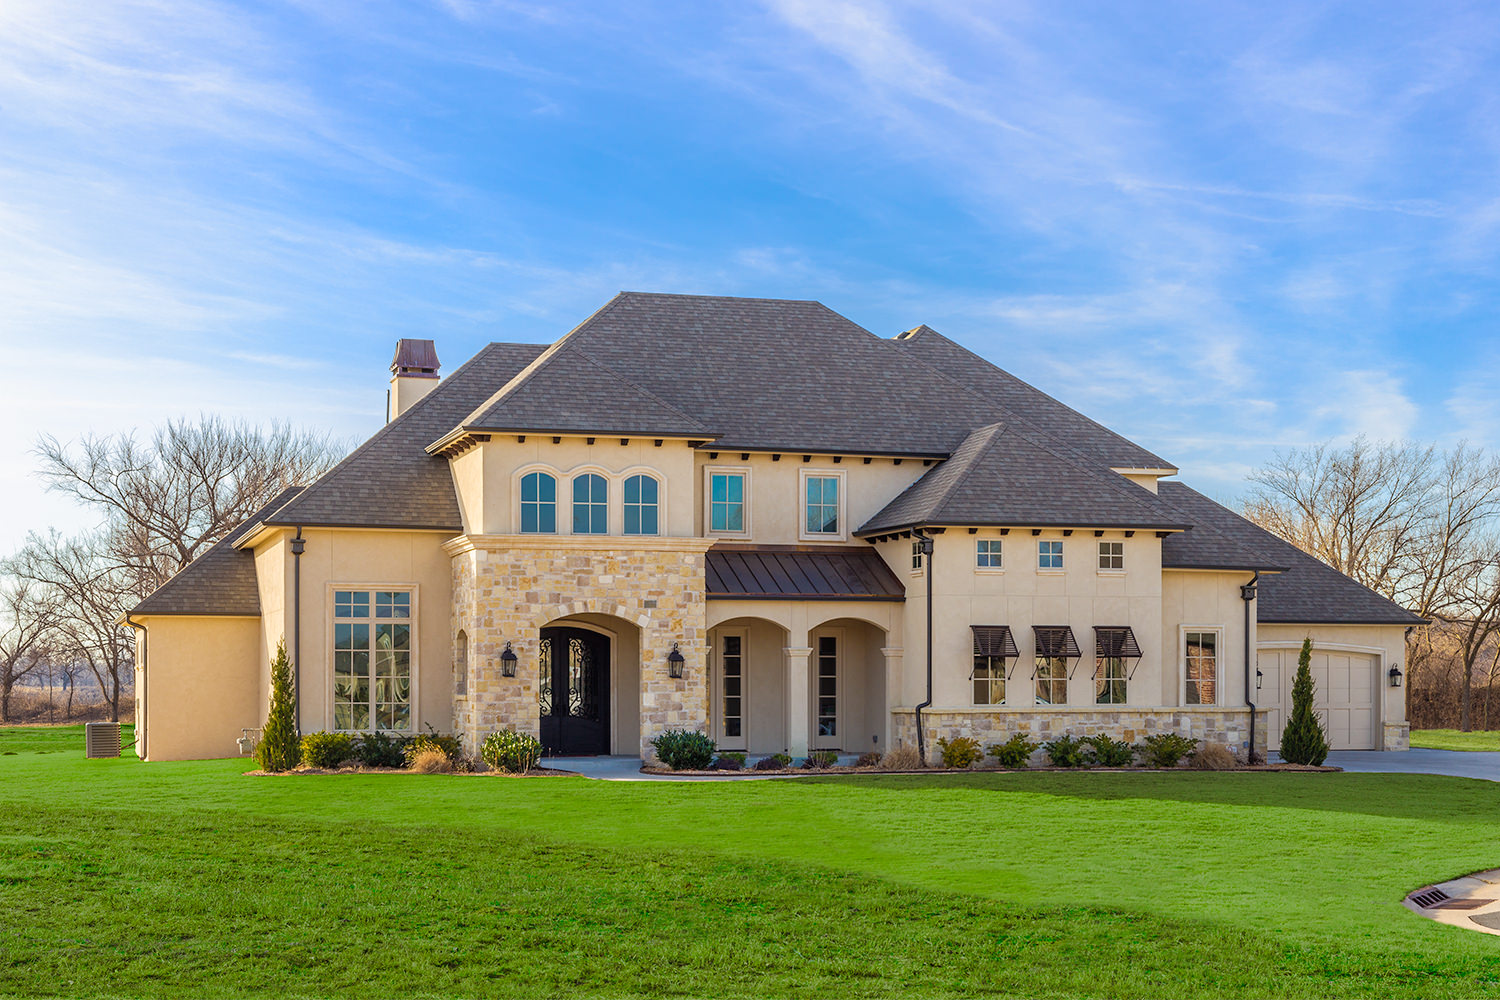 Italian transitional home designs bainbridge design group for Transitional house plans